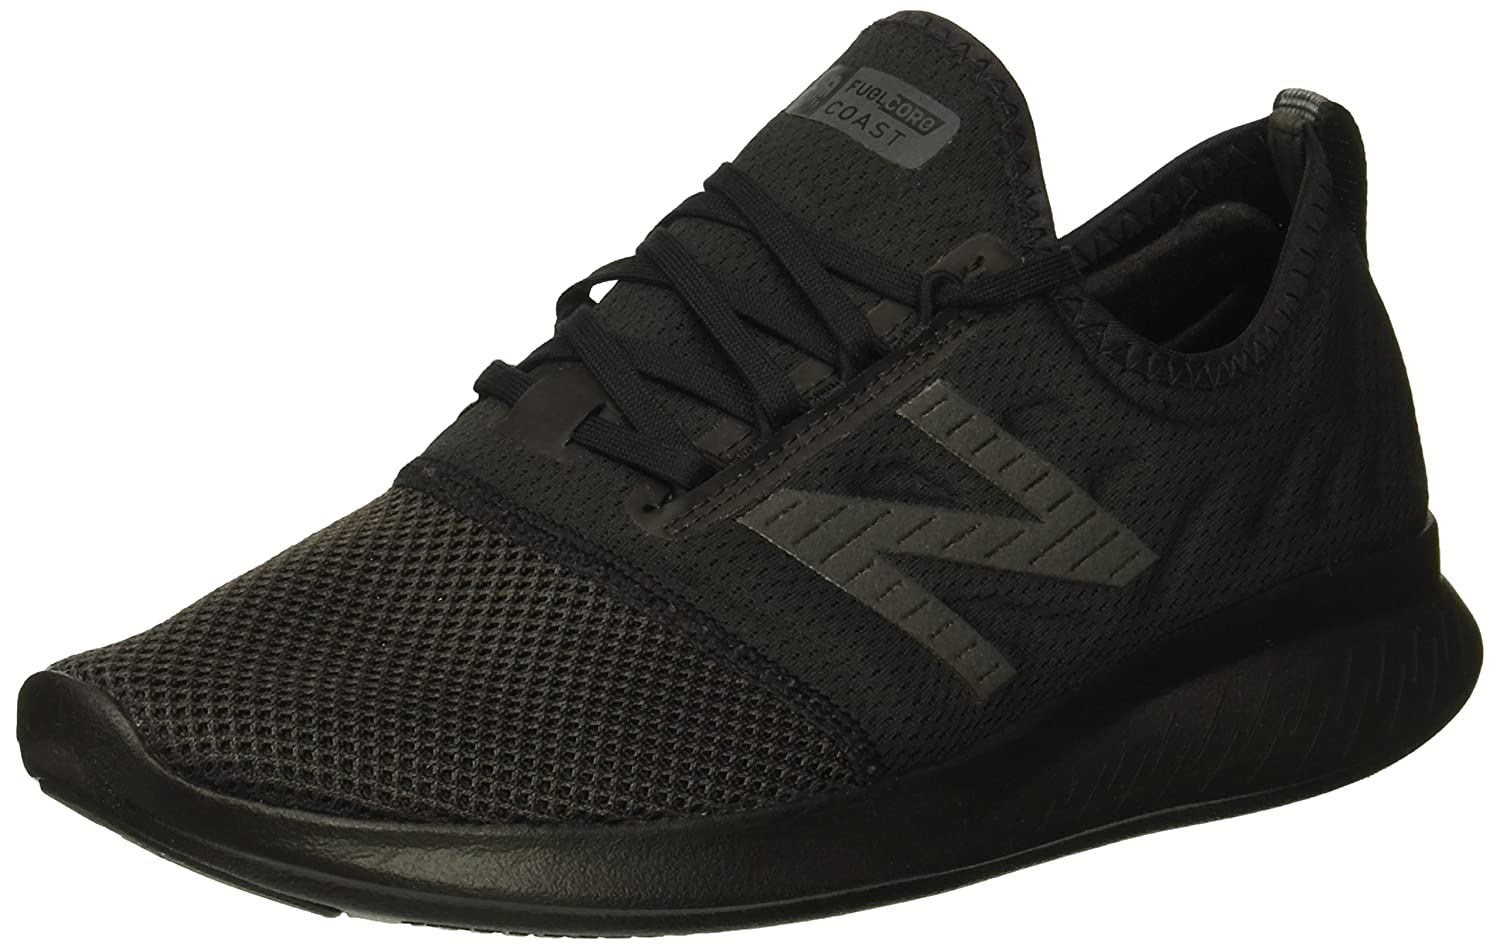 New Balance Women's Coast V4 FuelCore Running Shoe B075R726WG 6.5 D US|Black